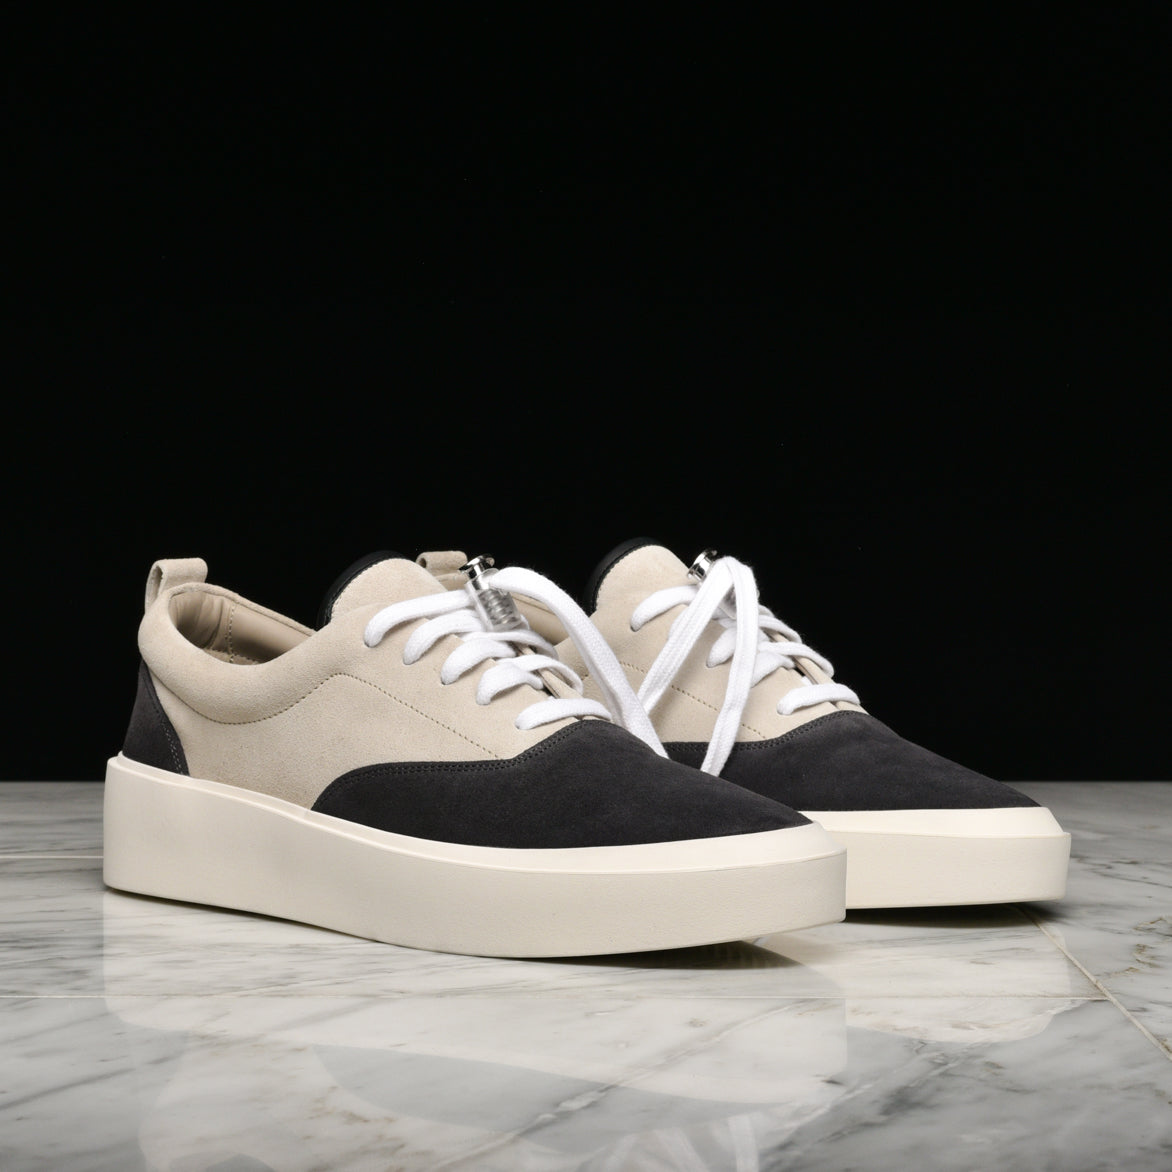 101 LACE UP SNEAKERS - BLACK / CREAM